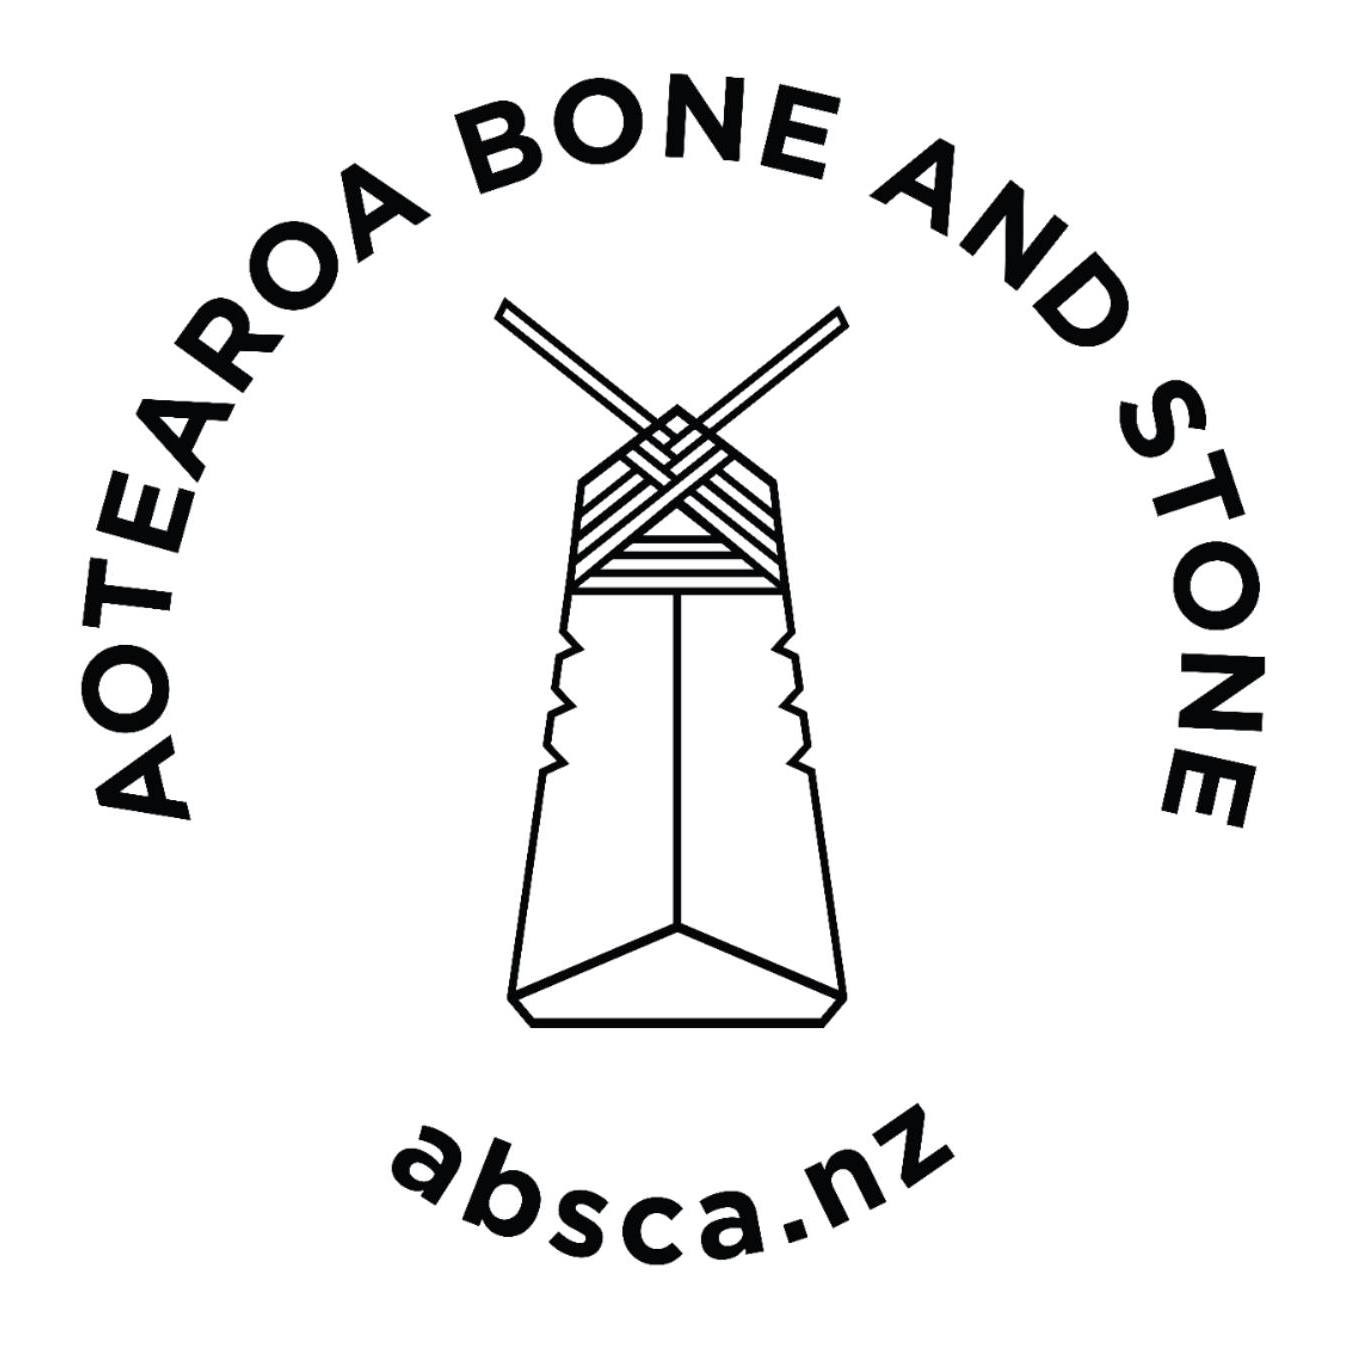 absca.nz Bone and stone carving New Zealand